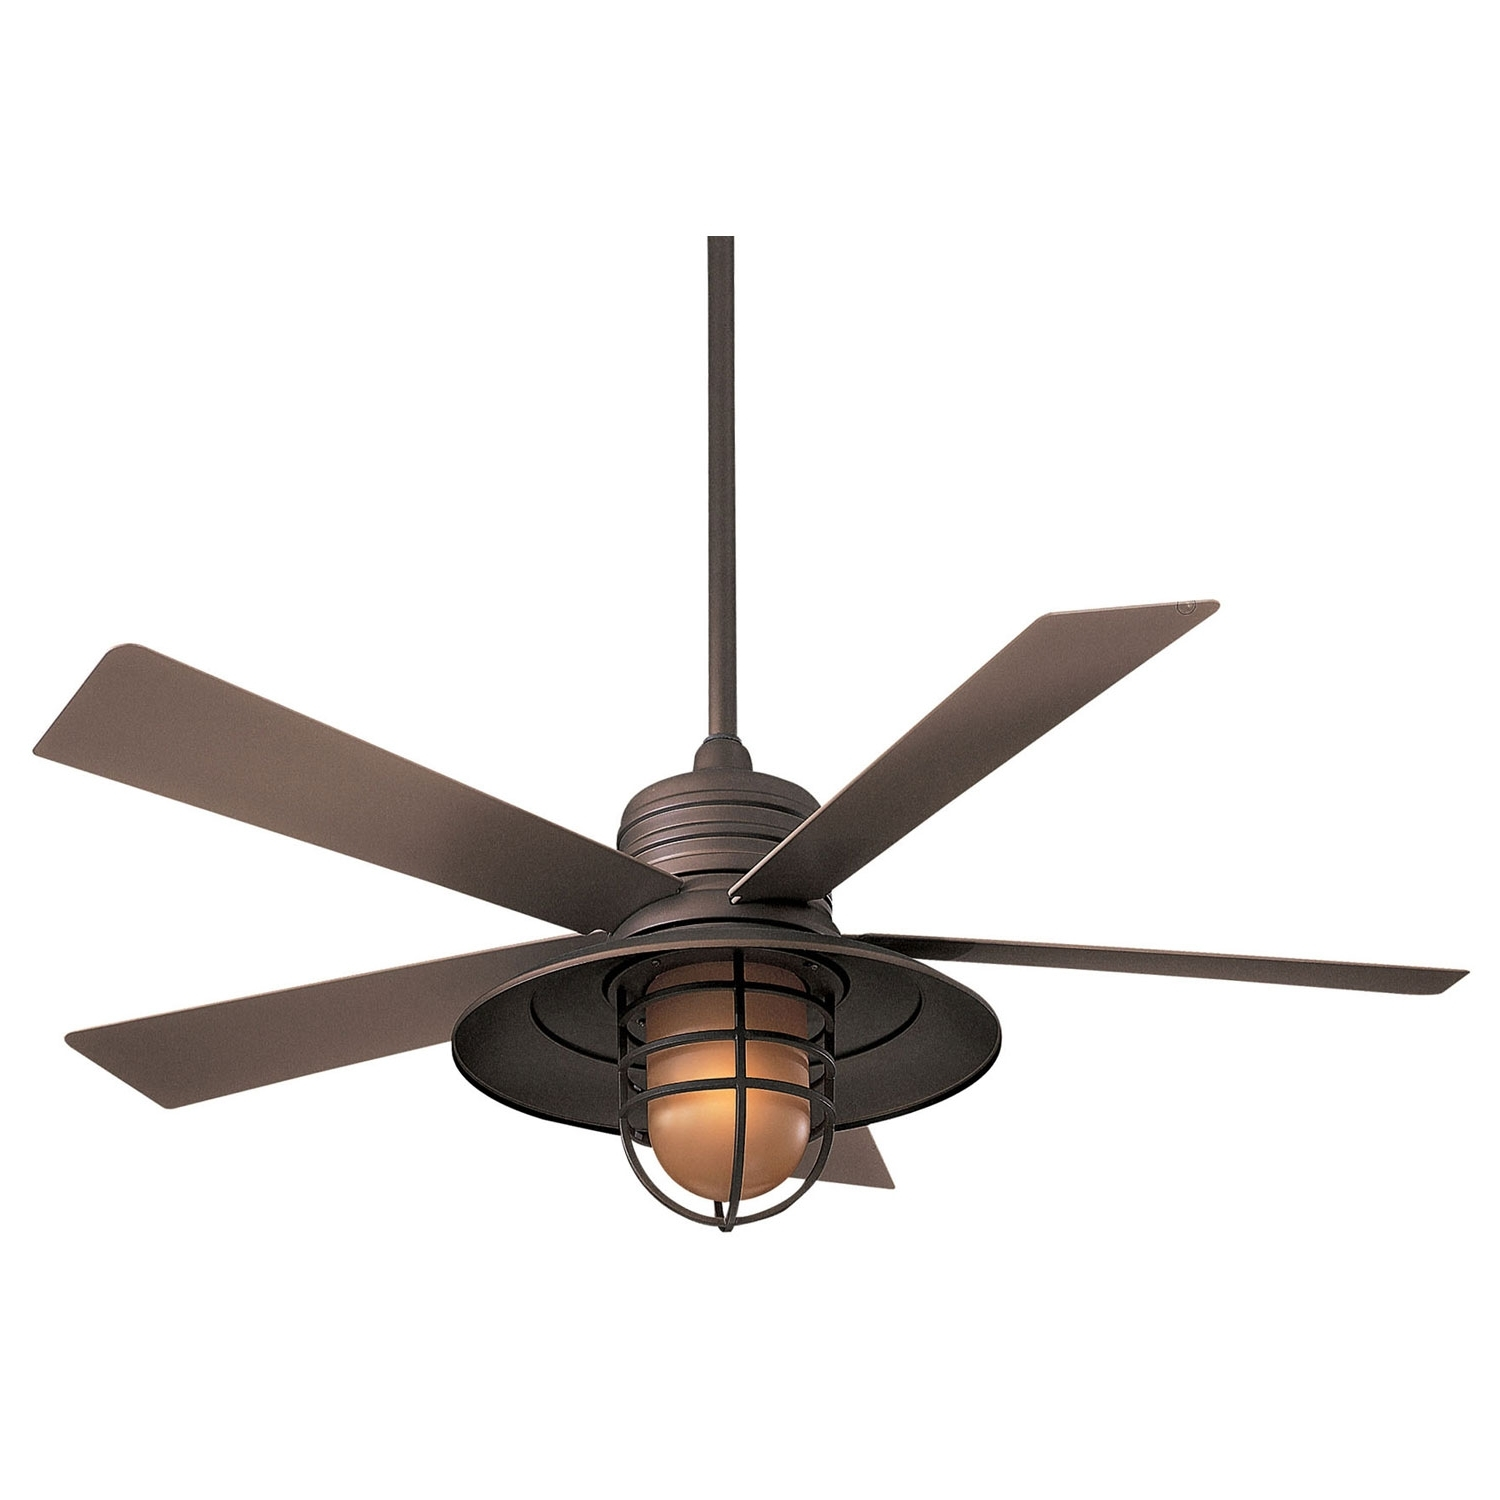 Fashionable Outdoor Ceiling Fans For Wet Locations Throughout Minka Aire Rainman Oil Rubbed Bronze 54 Inch Blade Indoor/outdoor (Gallery 16 of 20)